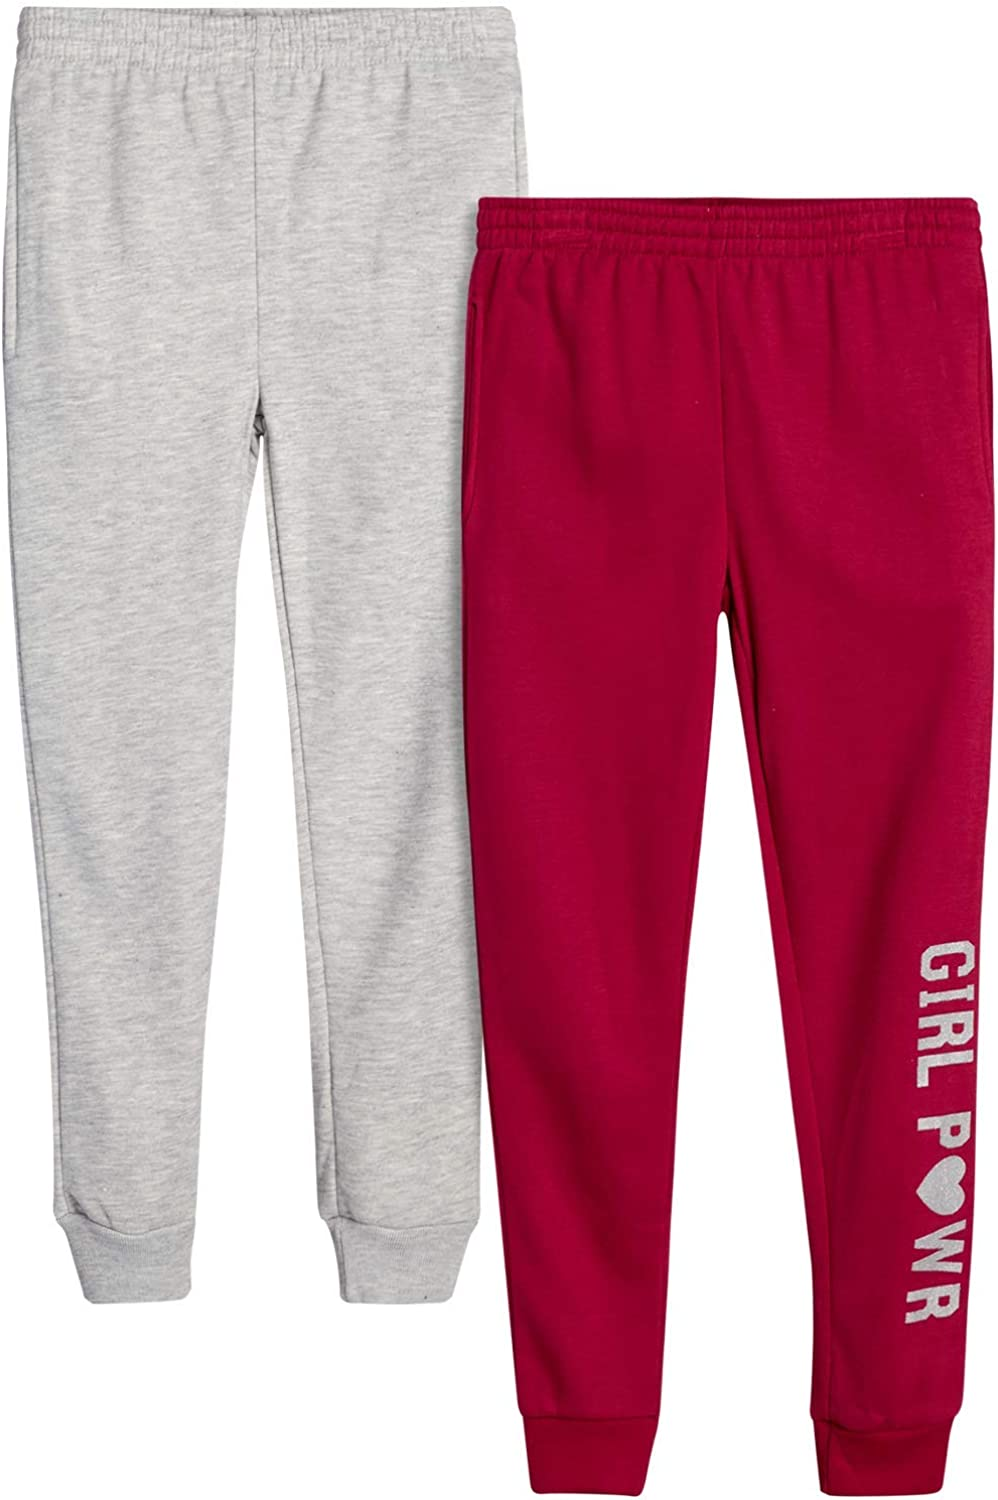 Real Love Girls' Fleece Jogger Pockets Pants OFFer and Attention brand with Print